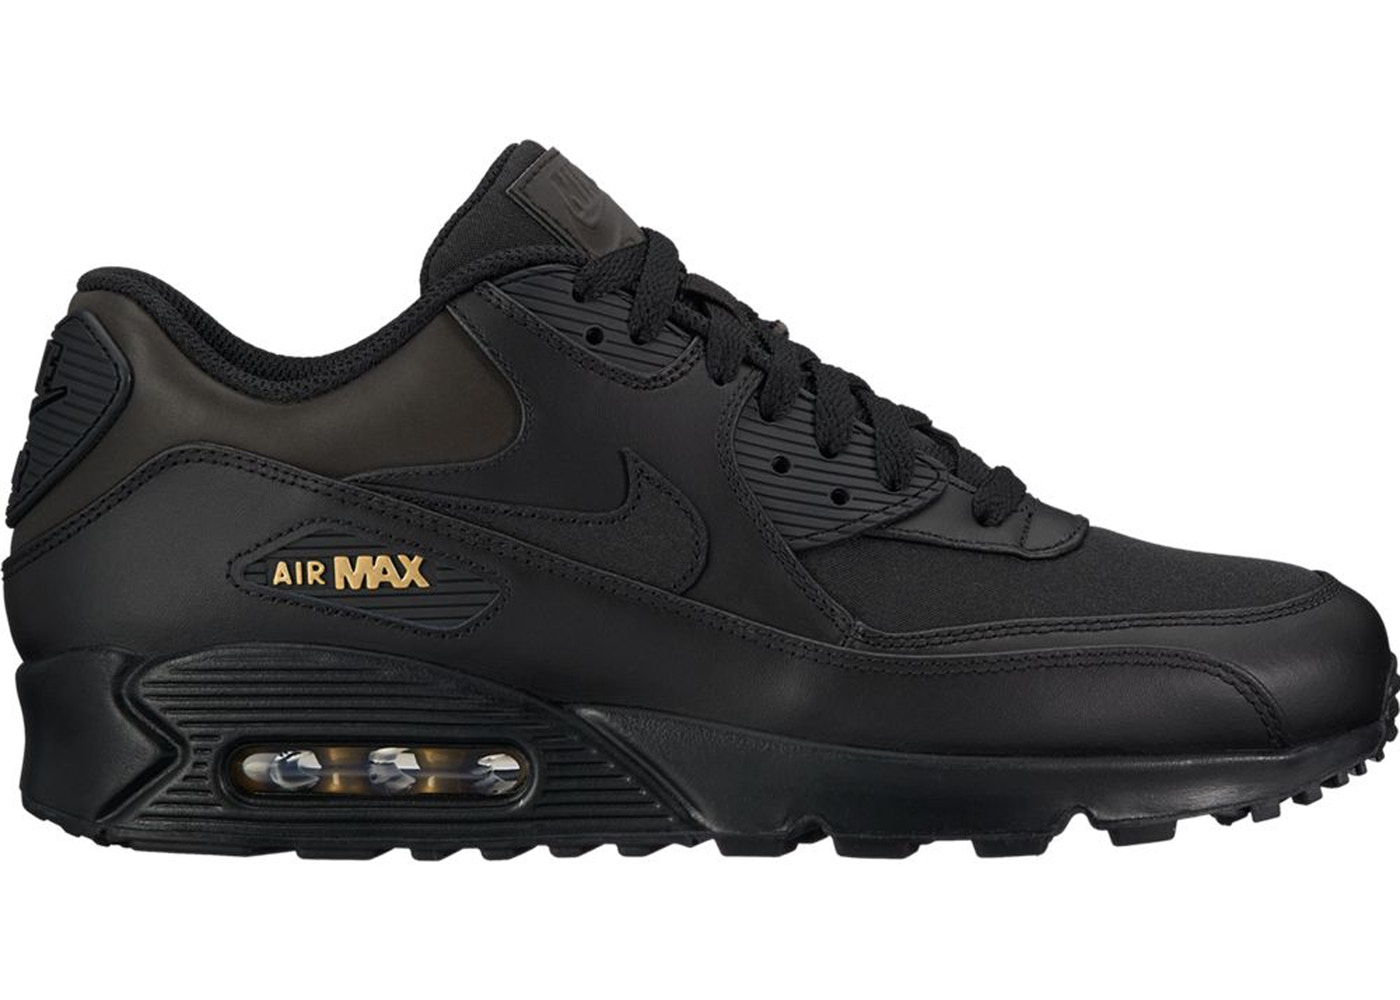 df869189f35d1 Nike Air Max 90 Shoes - Price Premium